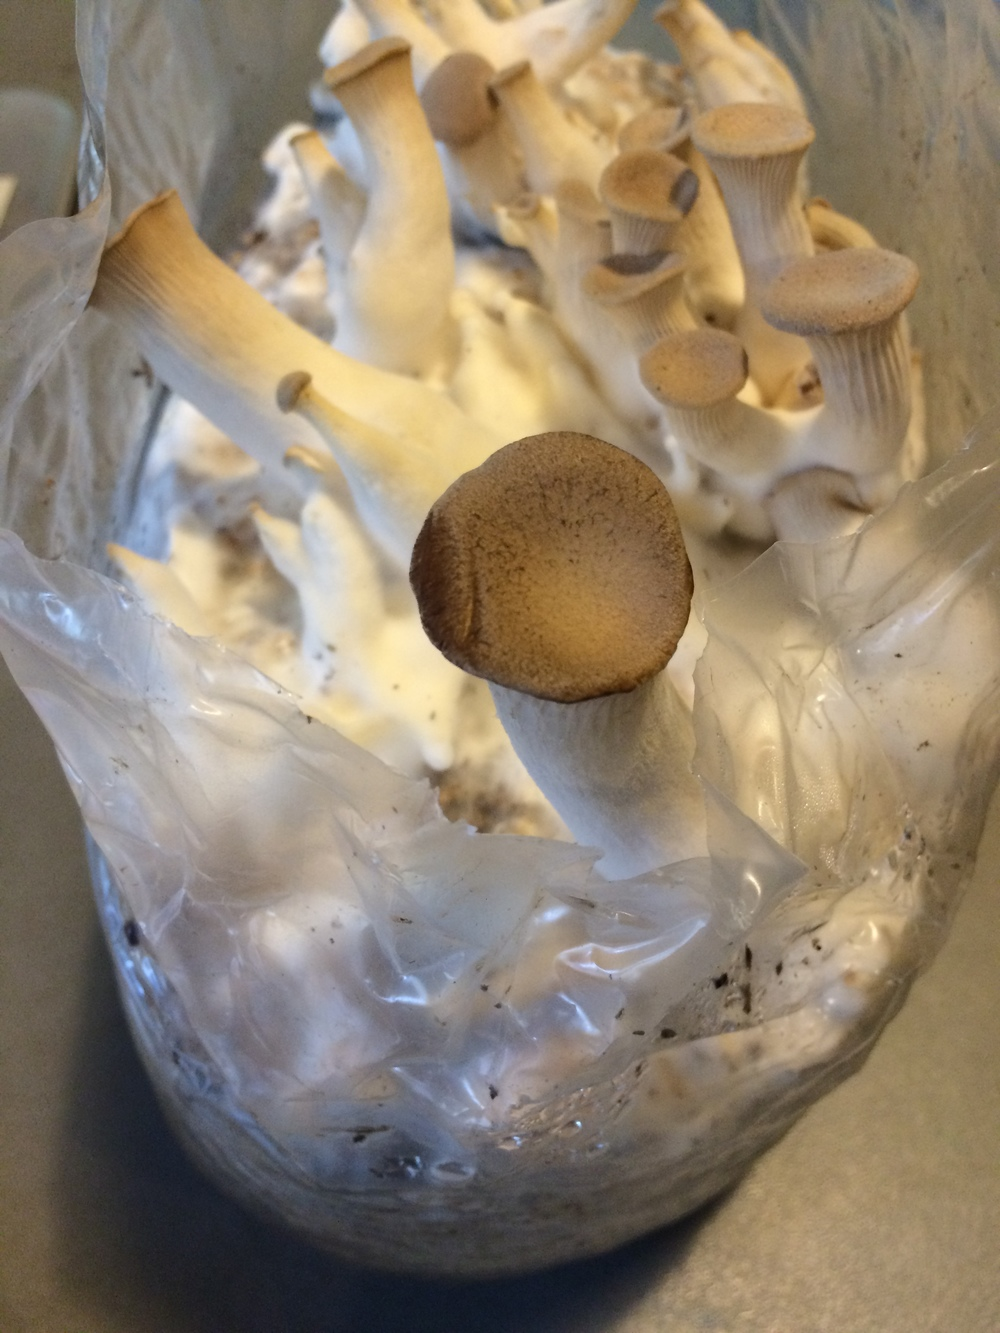 Mushrooms growing in a plastic bag full of sawdust